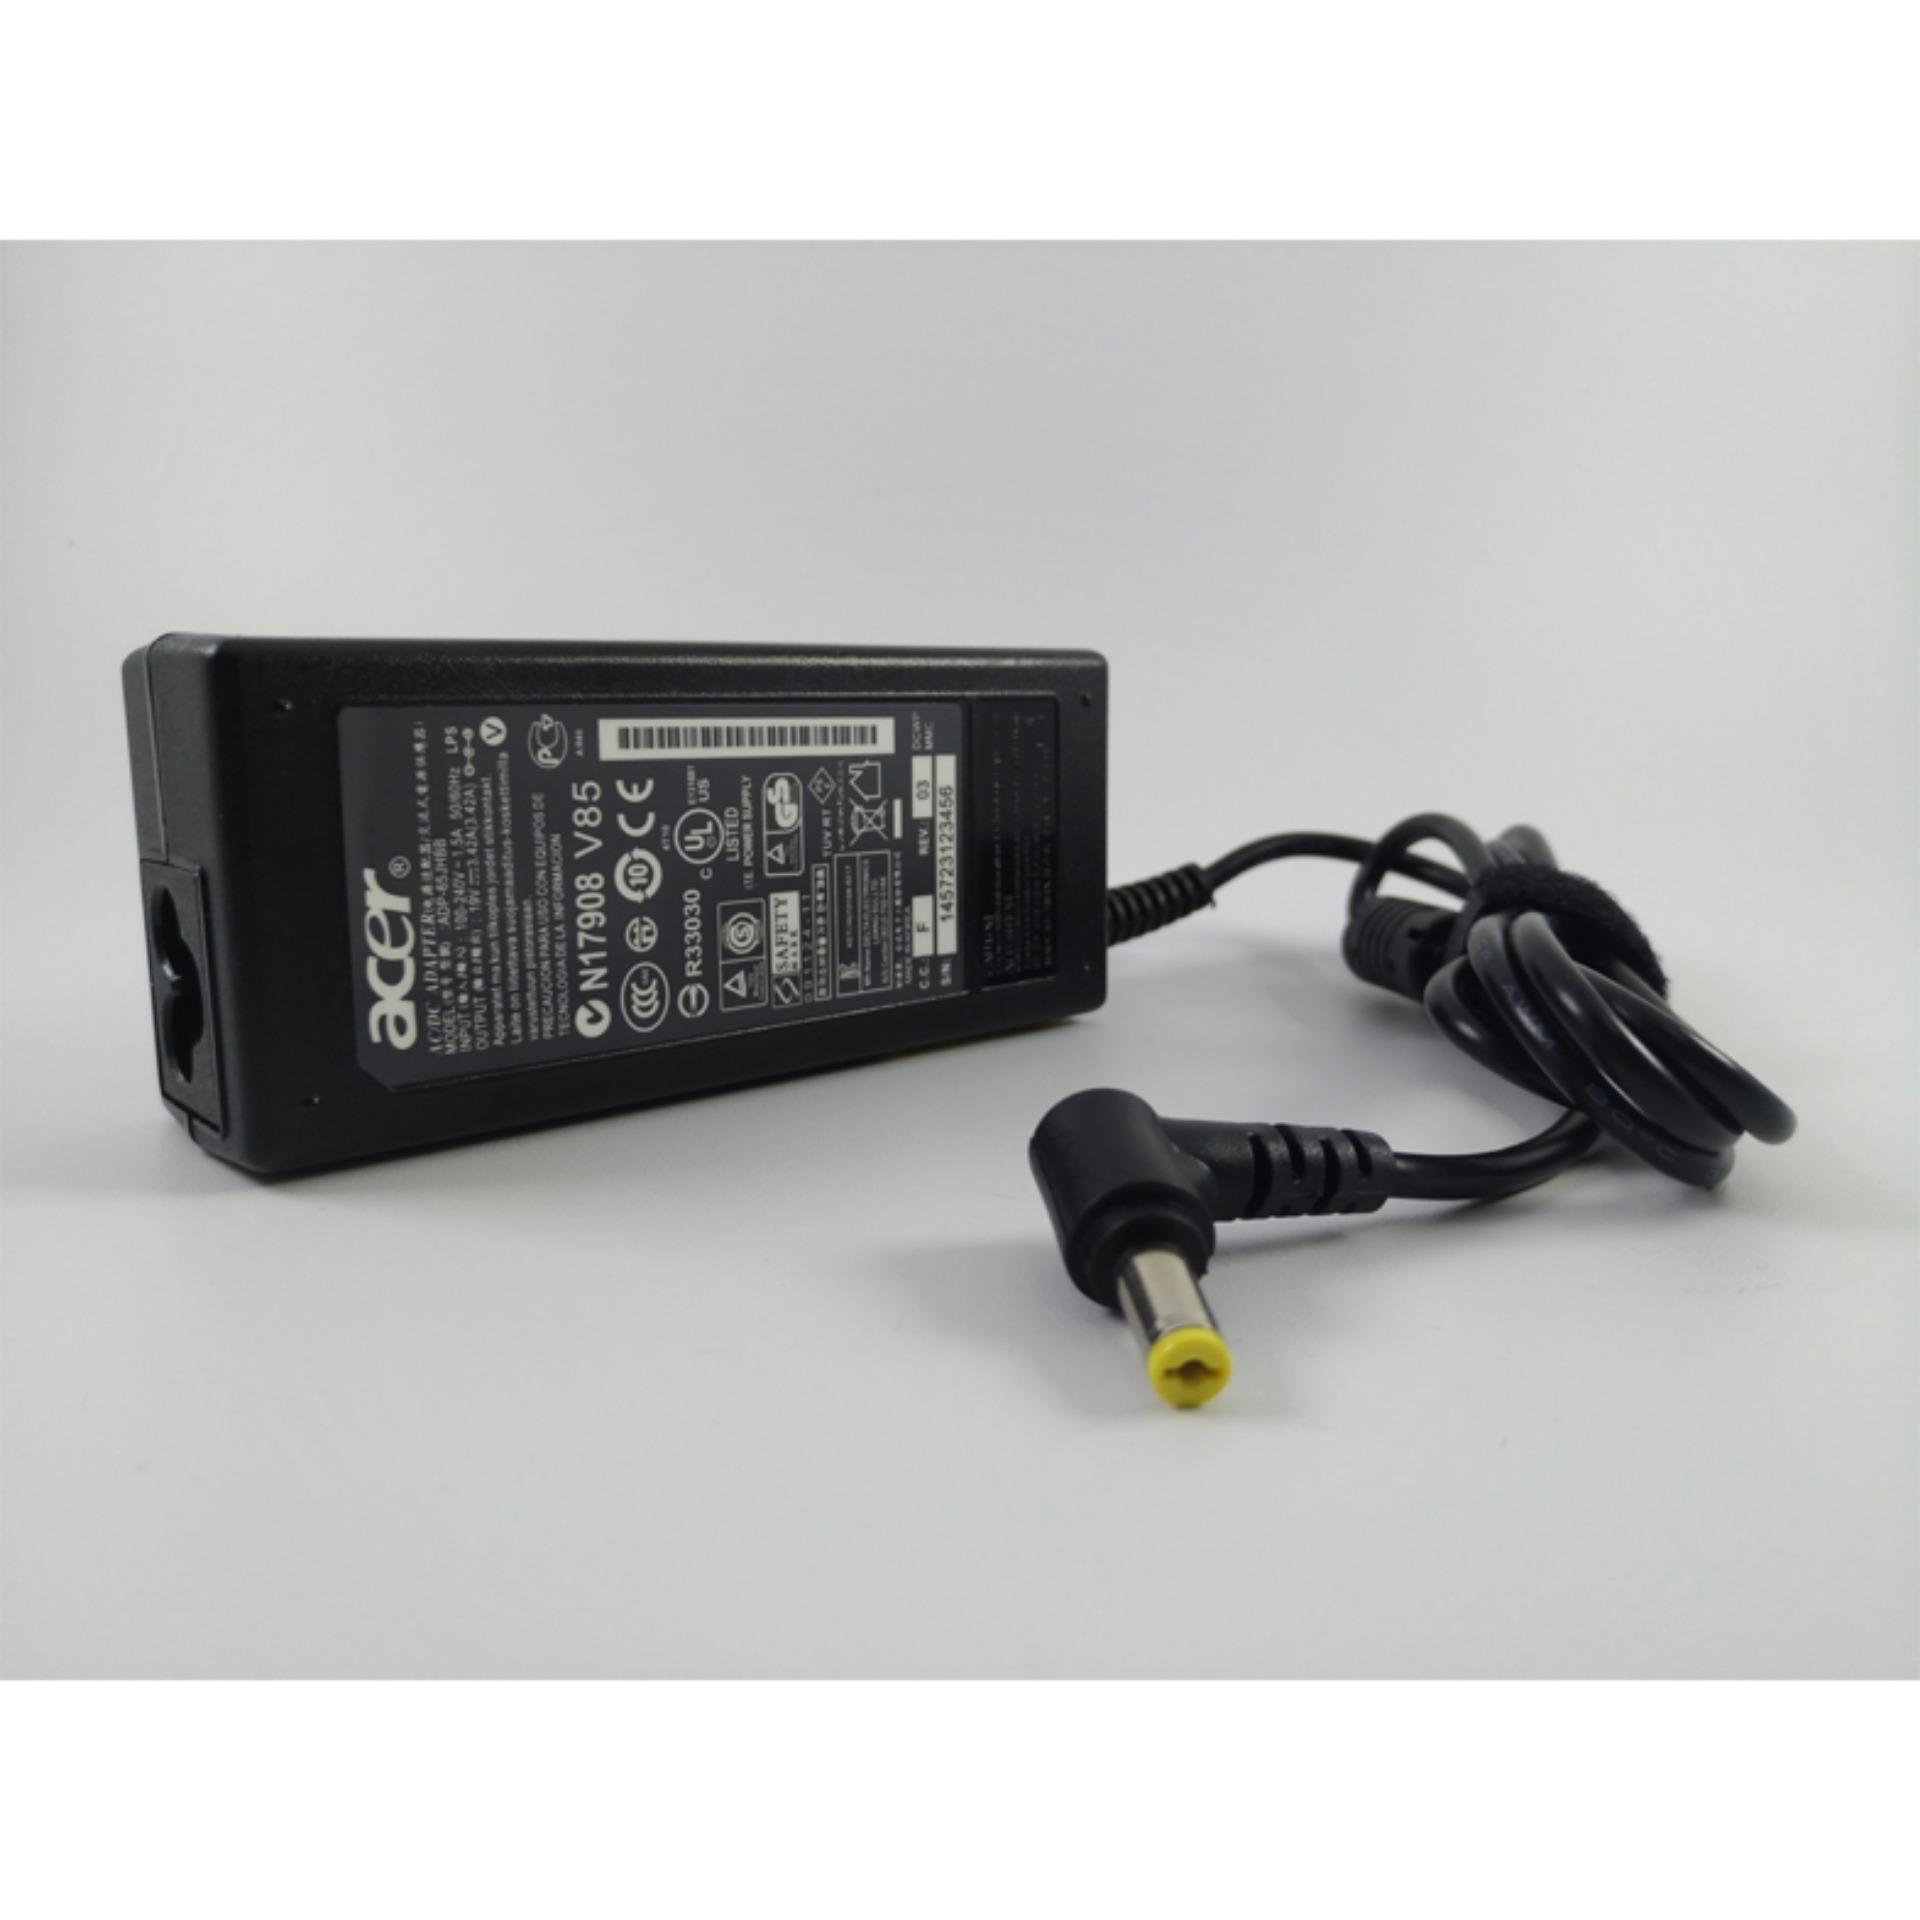 ACER Original Adaptor Charger Laptop Notebook Aspire 4738 4732 4736 4740 4741 19V 3.42A Berikut Kabel Power